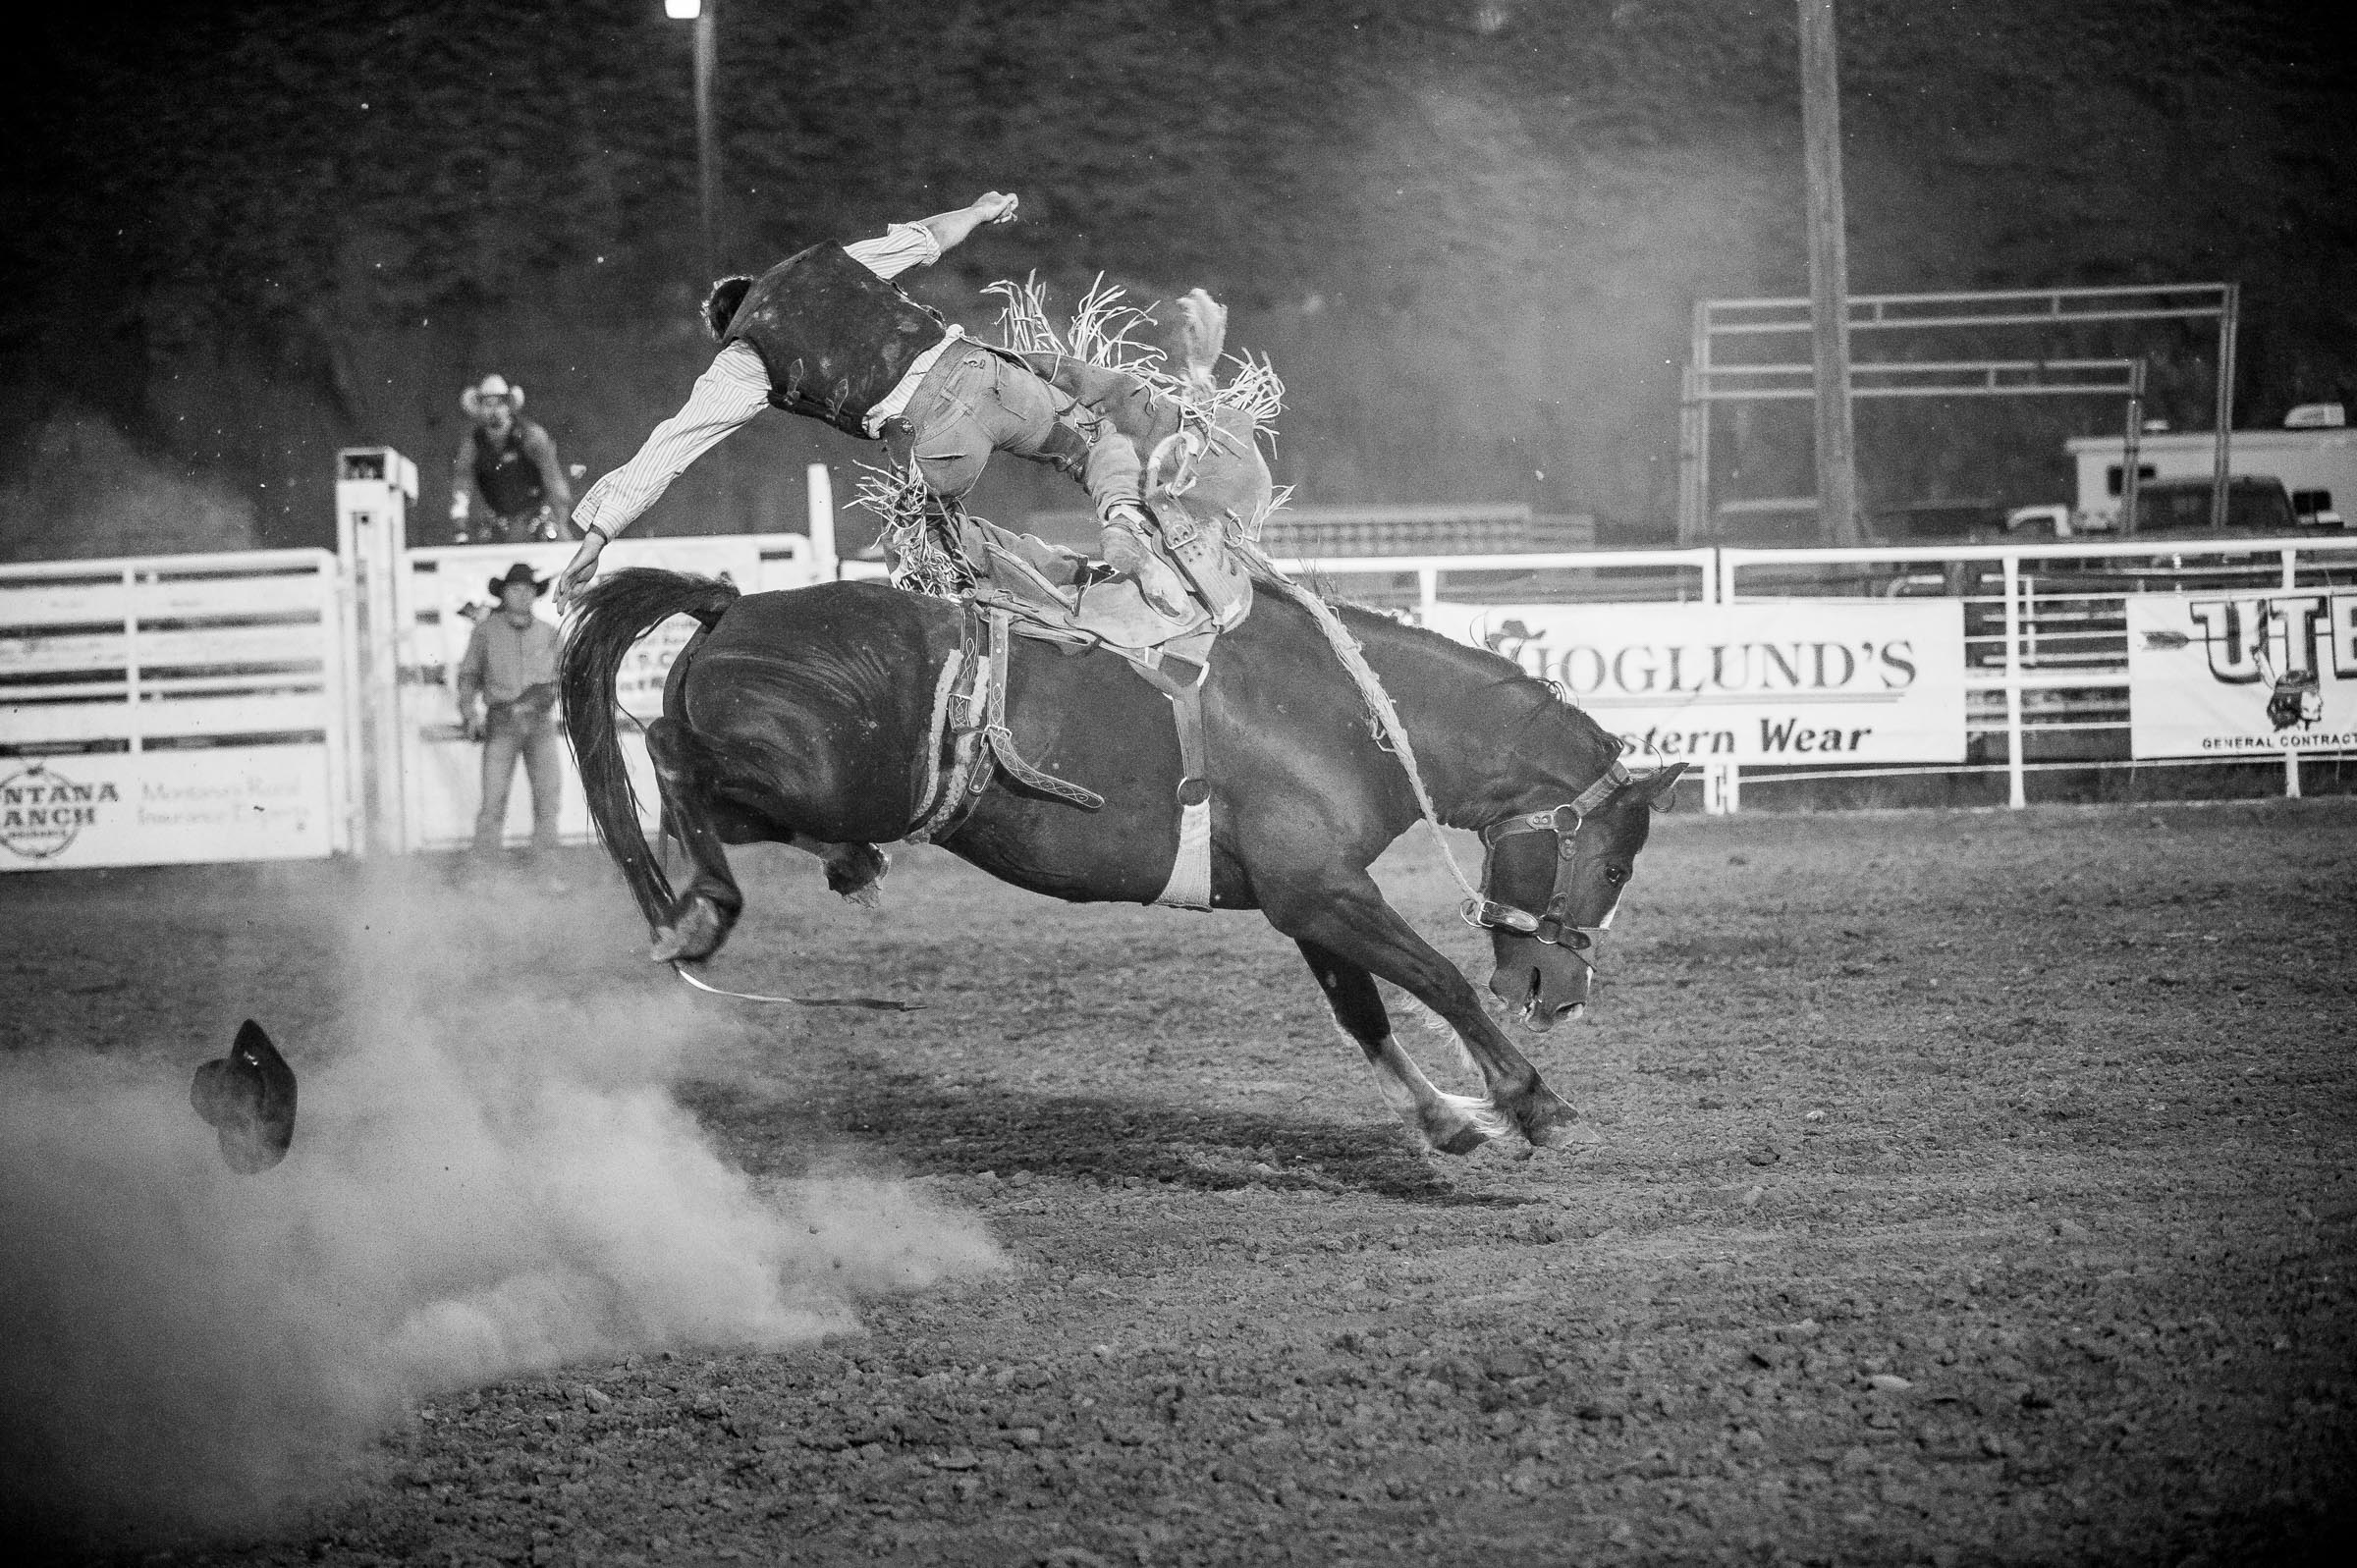 Bareback rider thrown from horse. © Tony Bynum